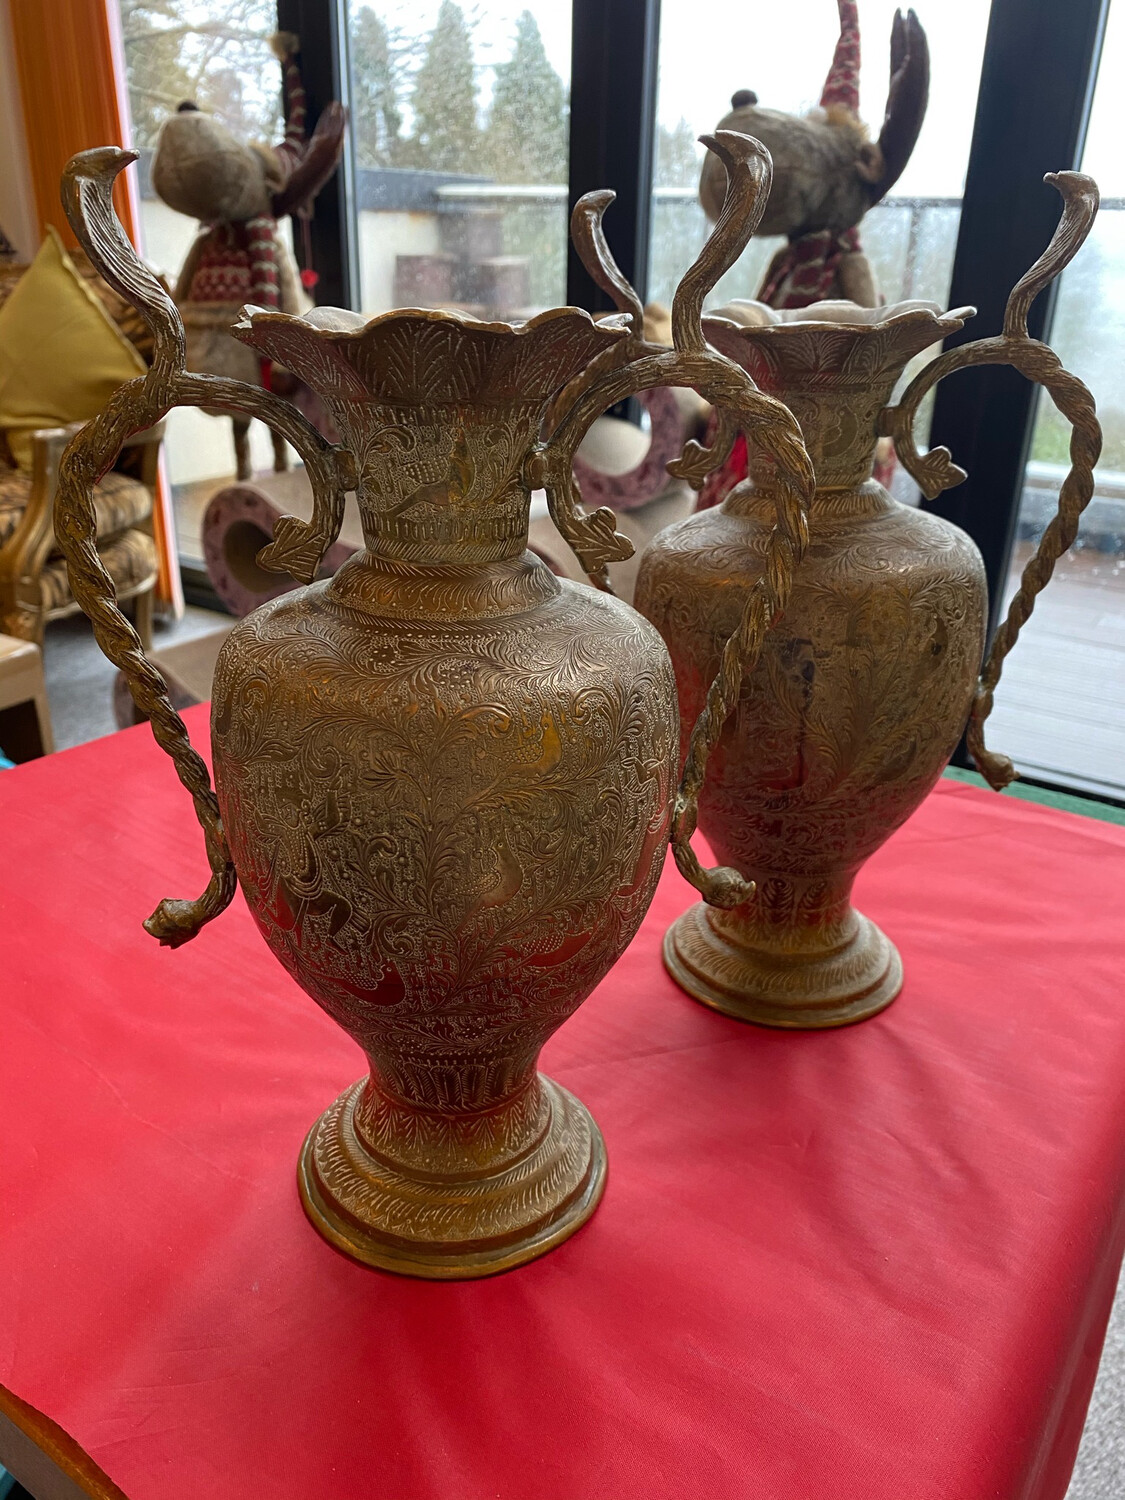 Pair Of Indian Brass Vases Or Urns - Probably 1960's